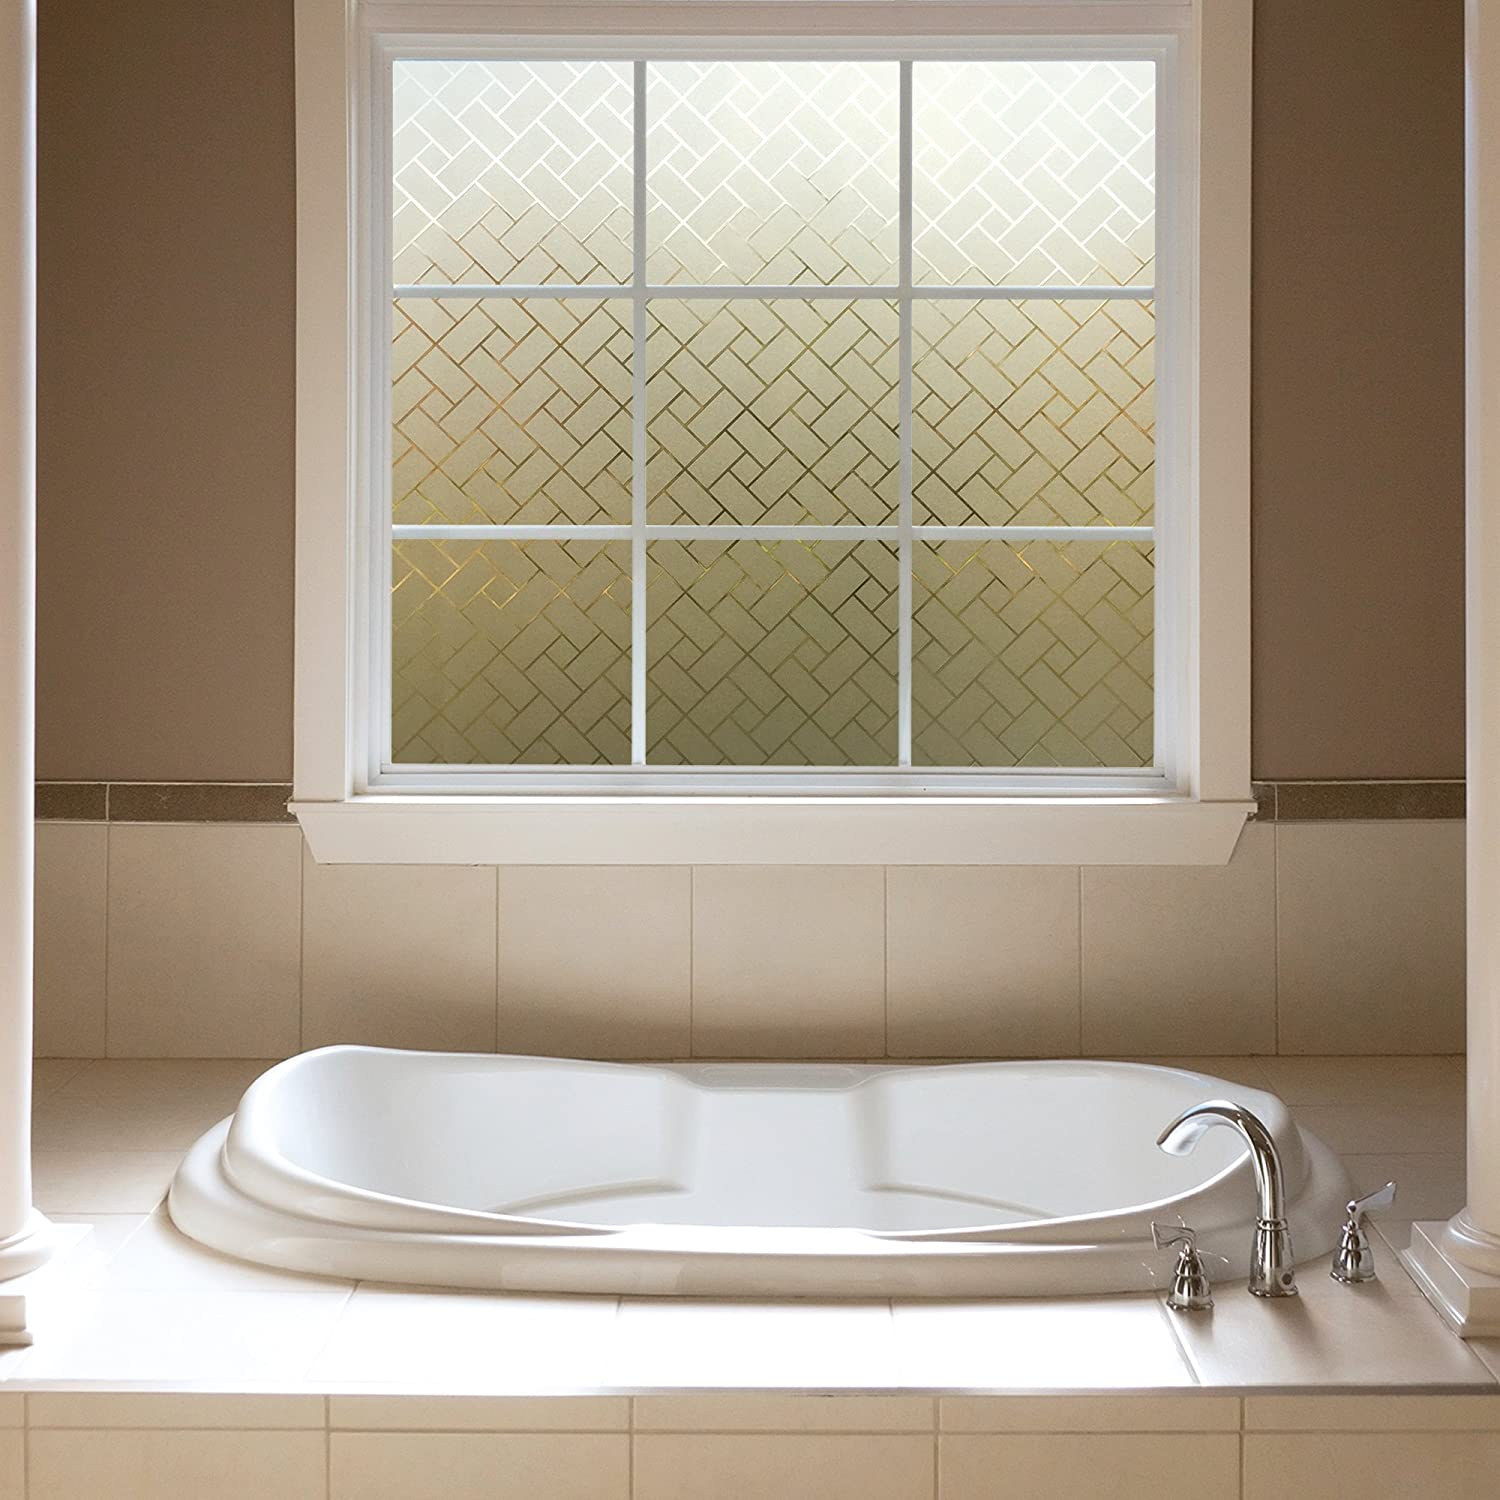 Gila 50188237 Film-36 x6.5 Frosted Tile Decorative Privacy Control Static Cling Window Film 36 x 78-INCH 36in x 78in 3 6.5 ft.